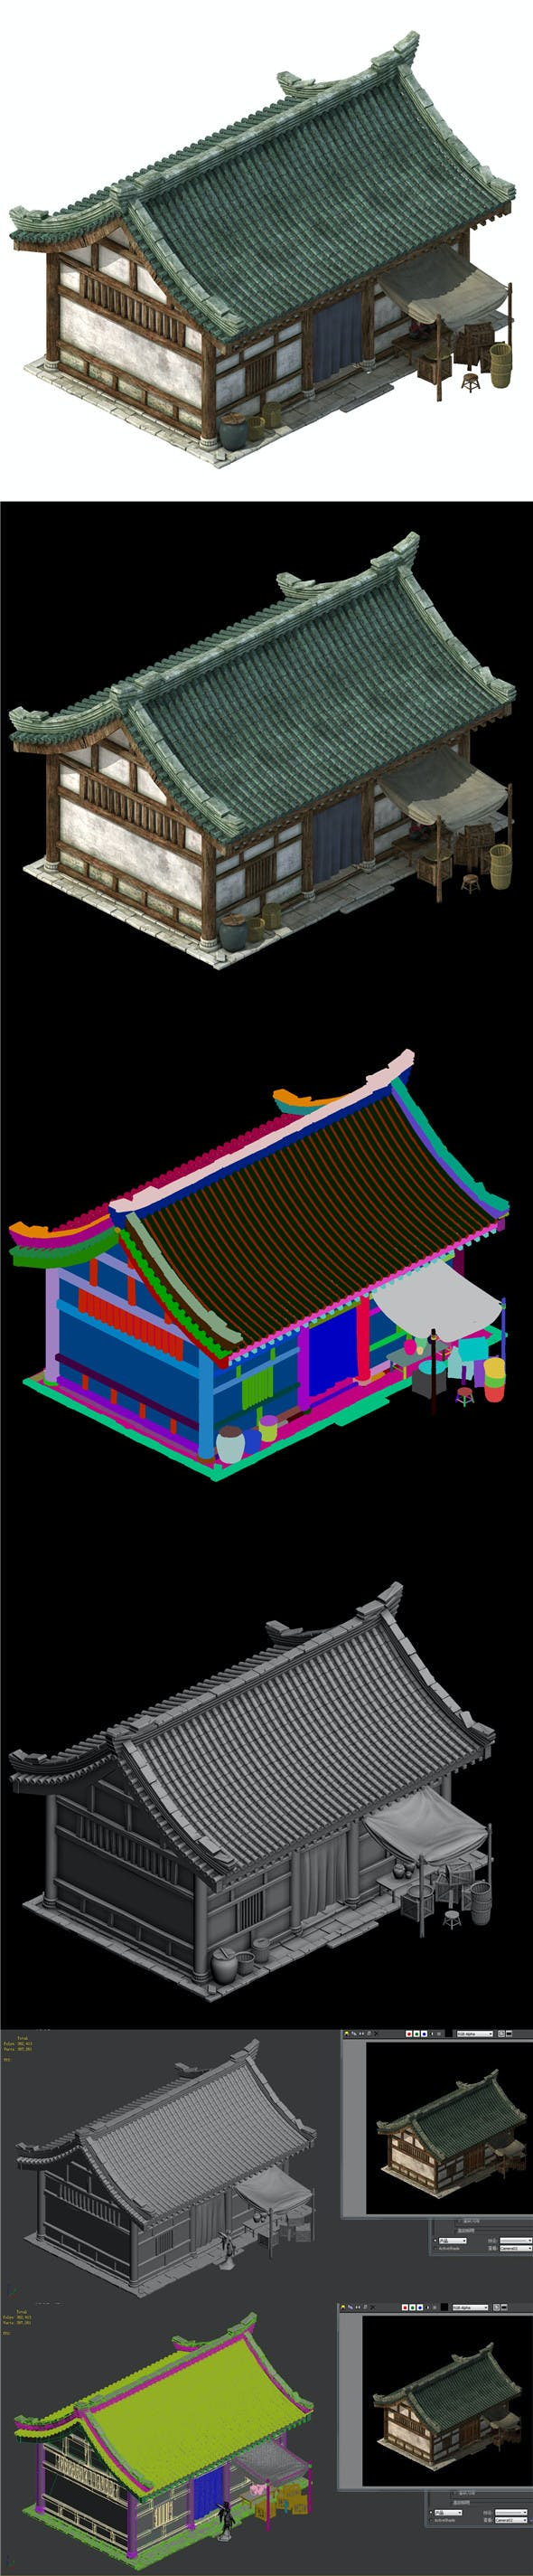 Huaihe River Building - Store - 3DOcean Item for Sale